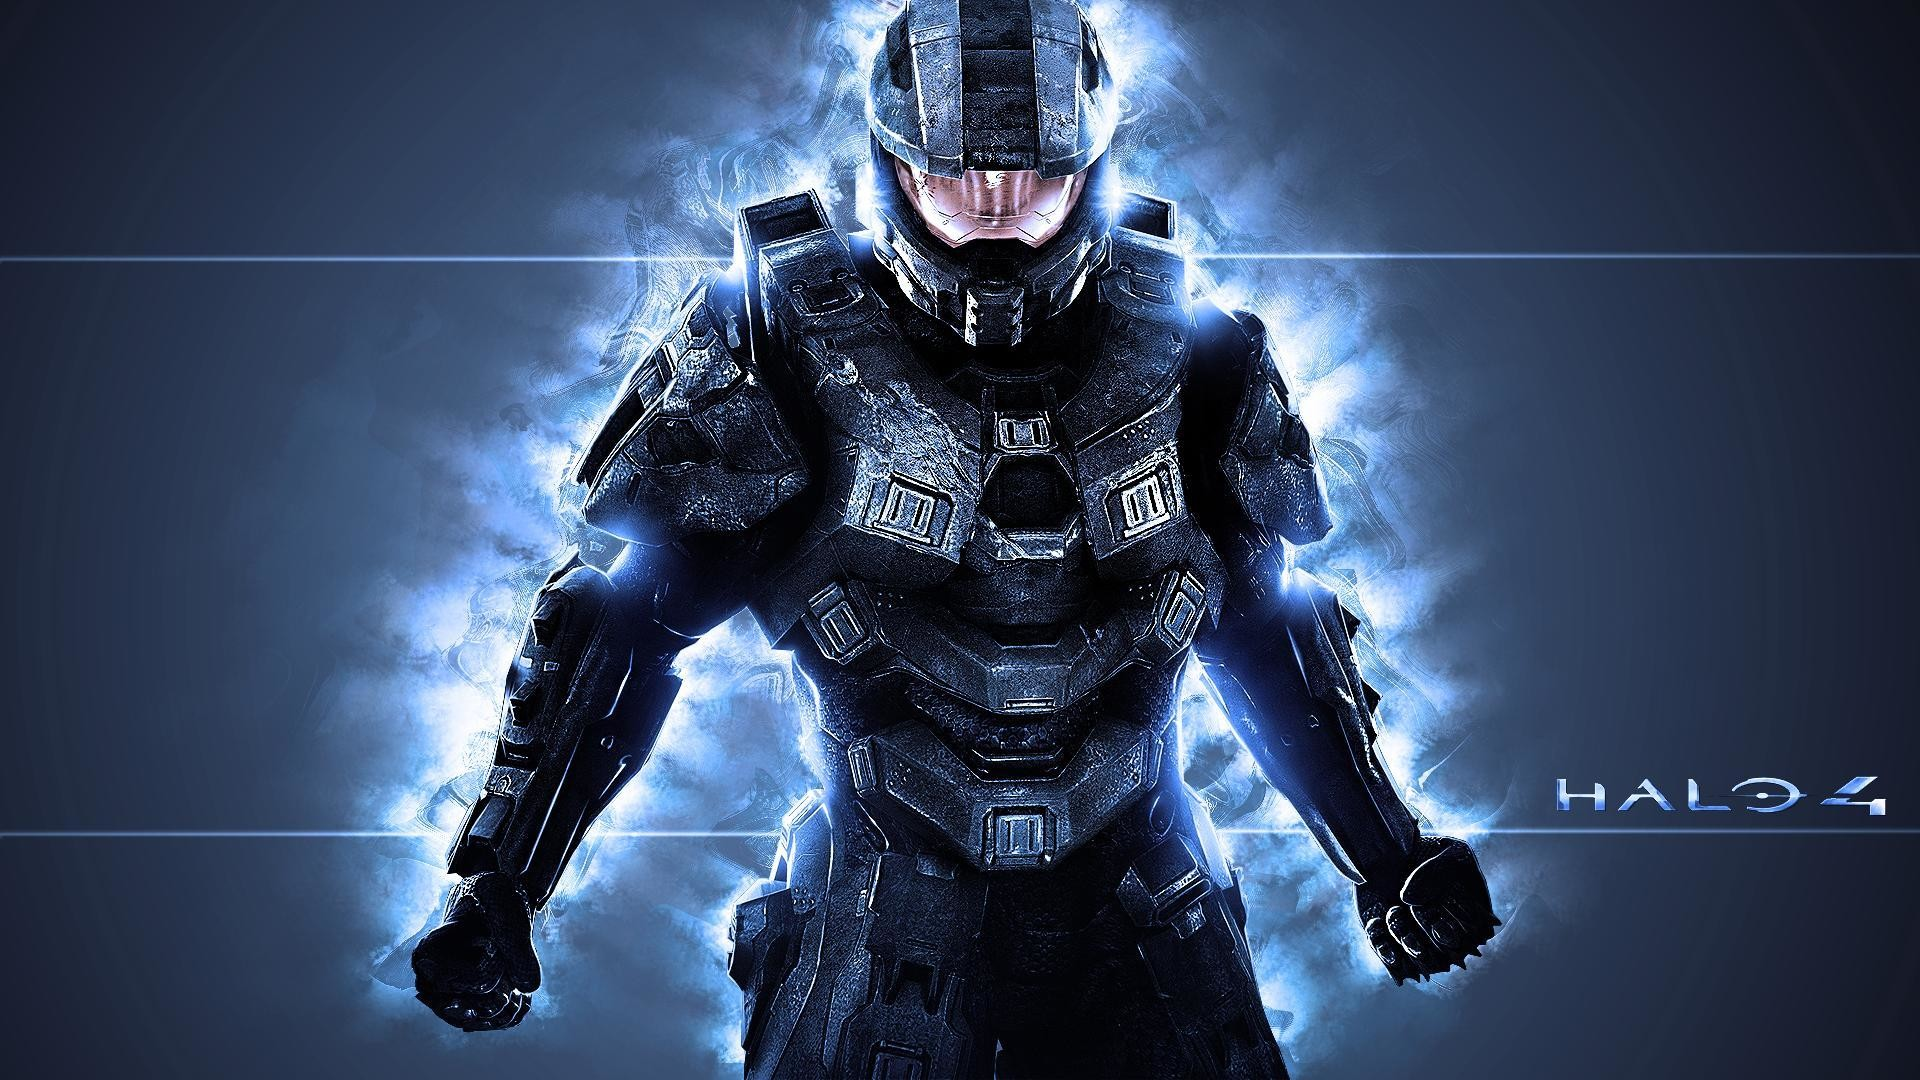 1920x1080 Halo 4 Master Chief Wallpapers 5 Wallpapers Grill